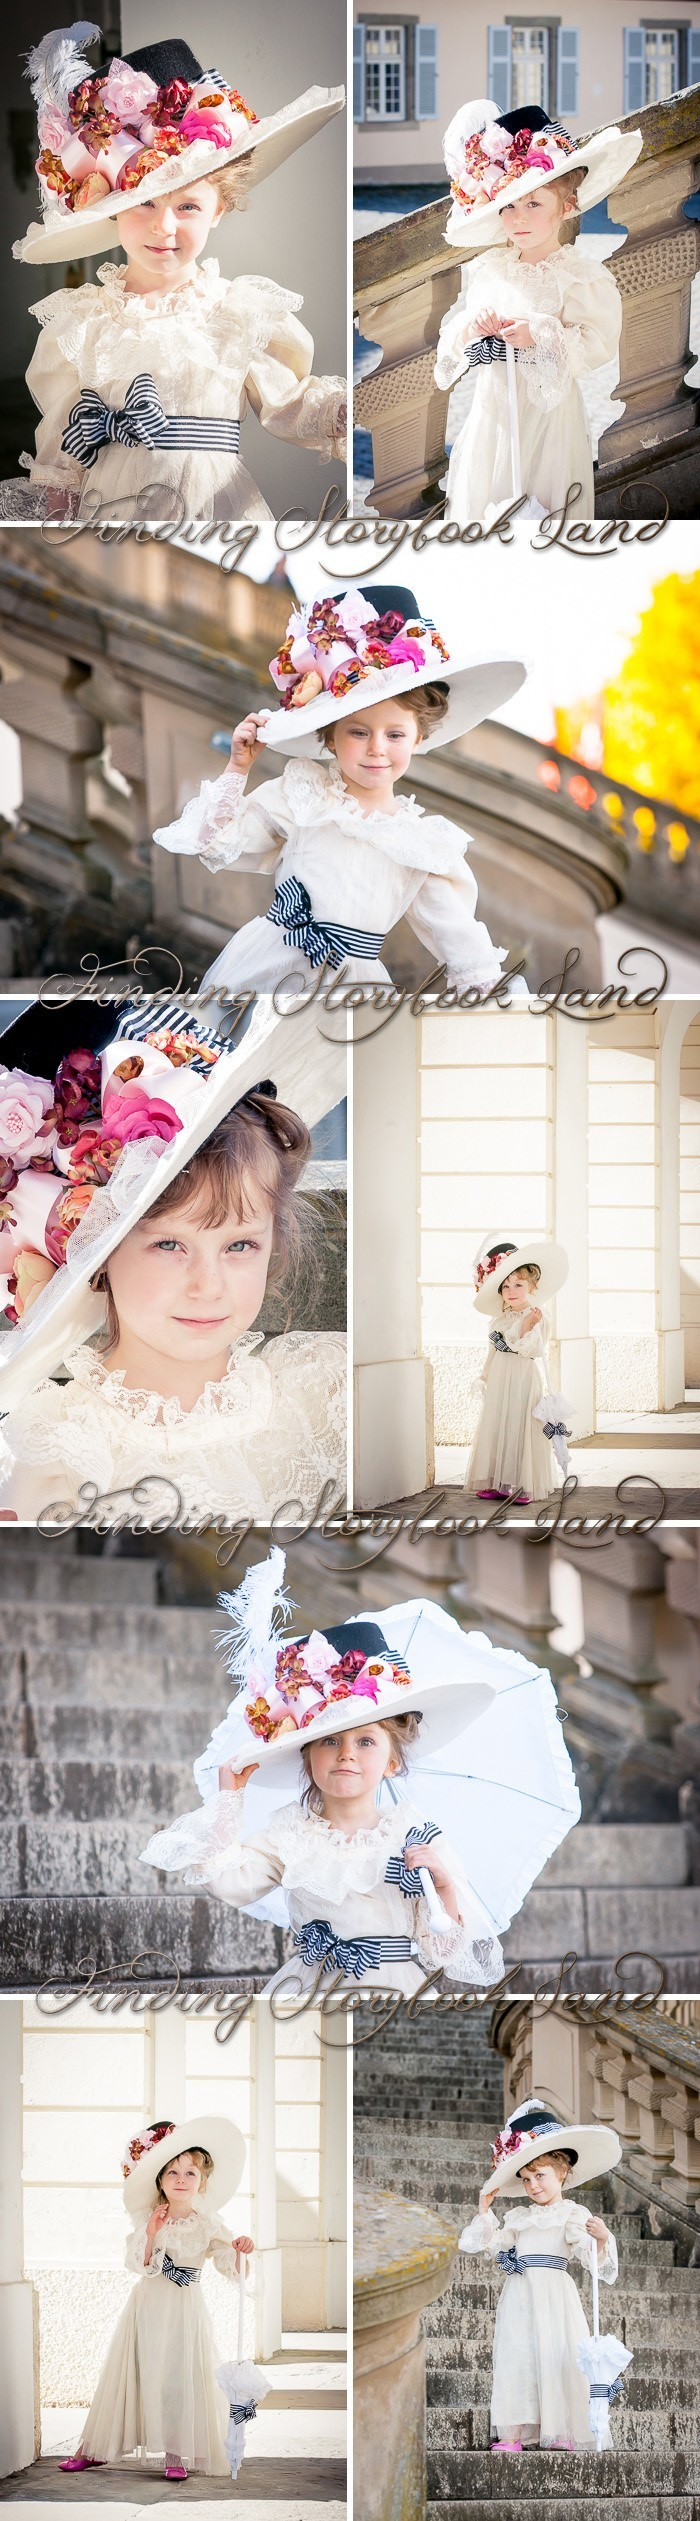 A photo shoot tutorial for how to create a My Fair Lady themed stylized photo session